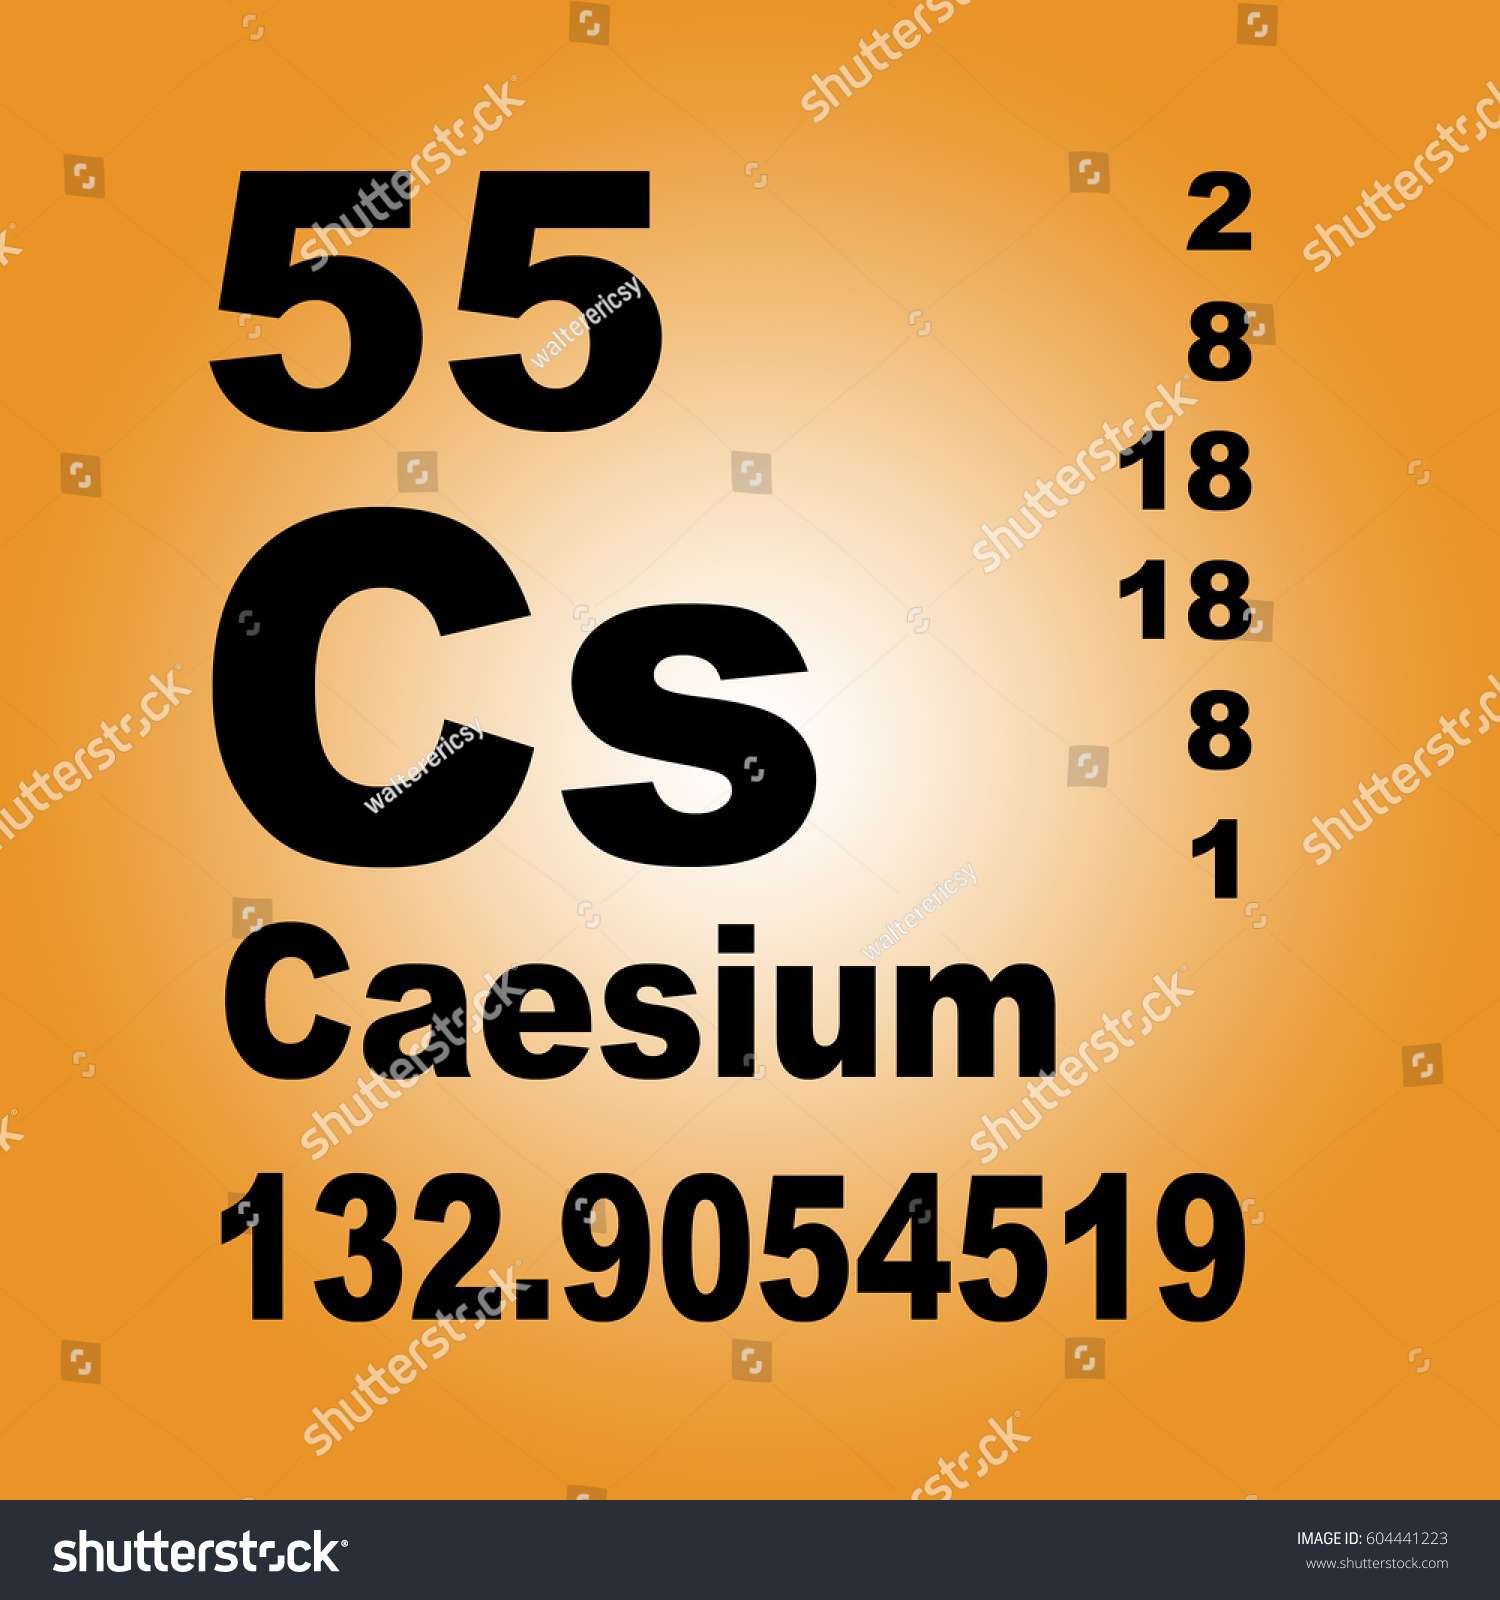 Cesium periodic table choice image periodic table images cesium periodic table gallery periodic table images caesium periodic table elements stock illustration 604441223 caesium periodic gamestrikefo Image collections